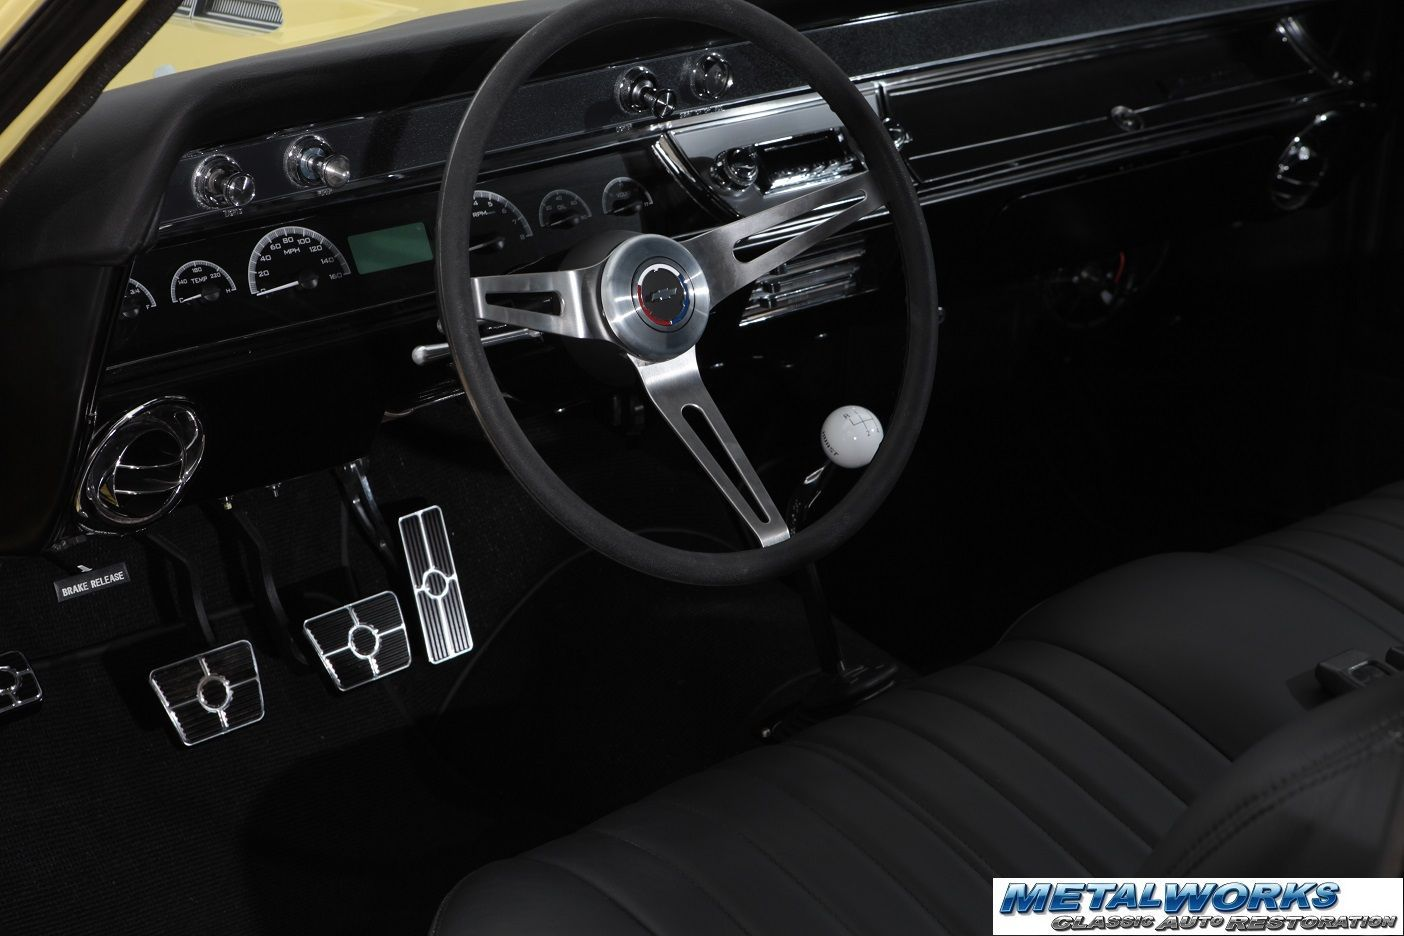 1966 Chevrolet Chevelle | MetalWorks 1966 Chevelle build